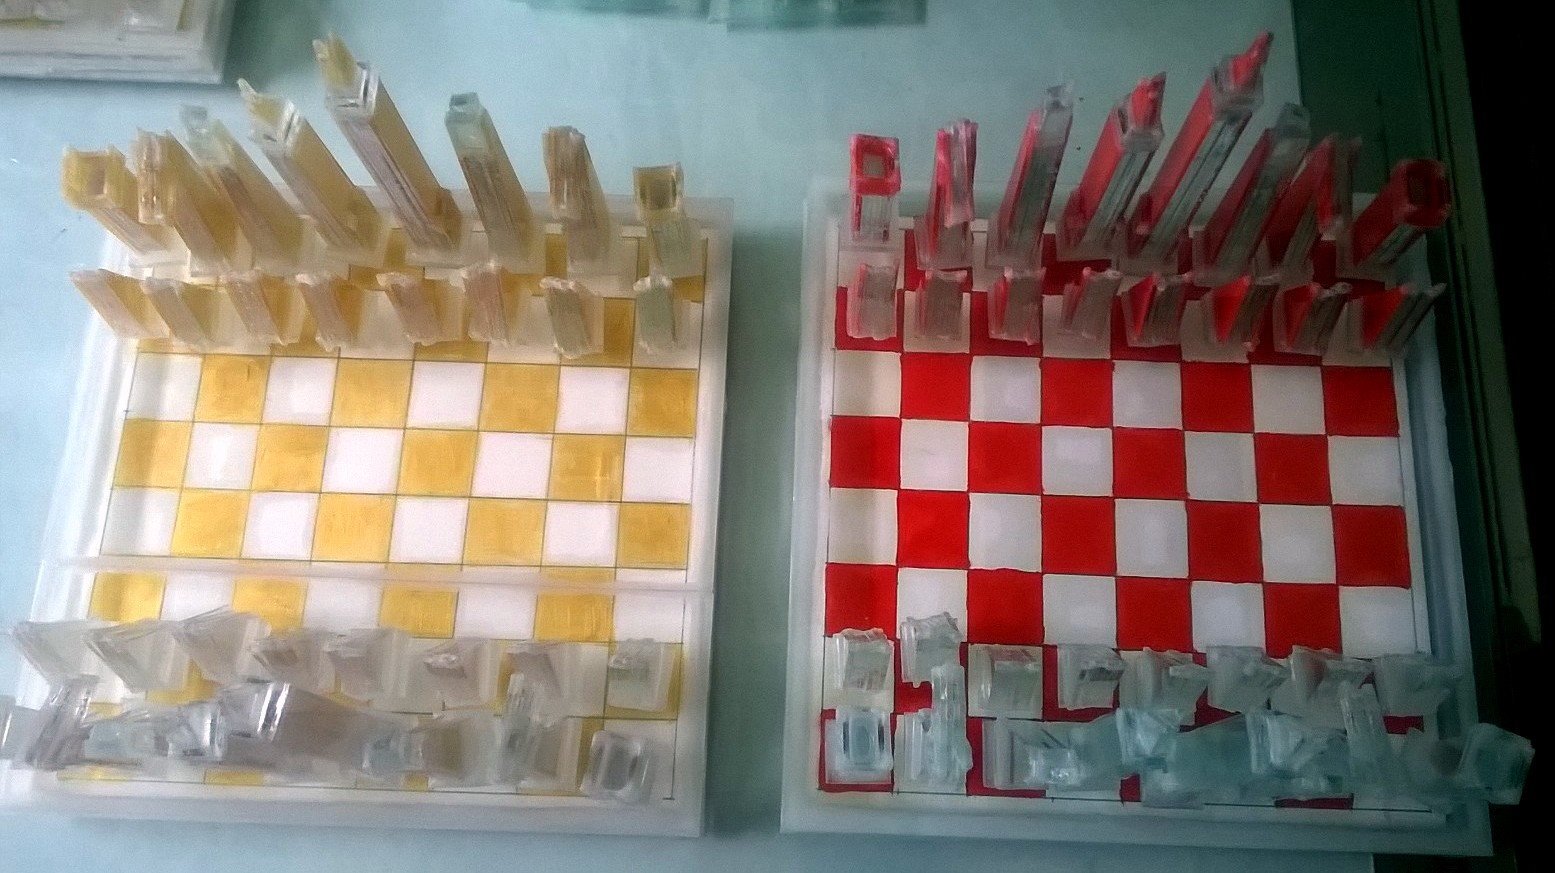 Gold + Red Chess | Clemens Weiss | 2013 | Glas, Papier, Farbe, Leim | 32 x 32 x 18 cm